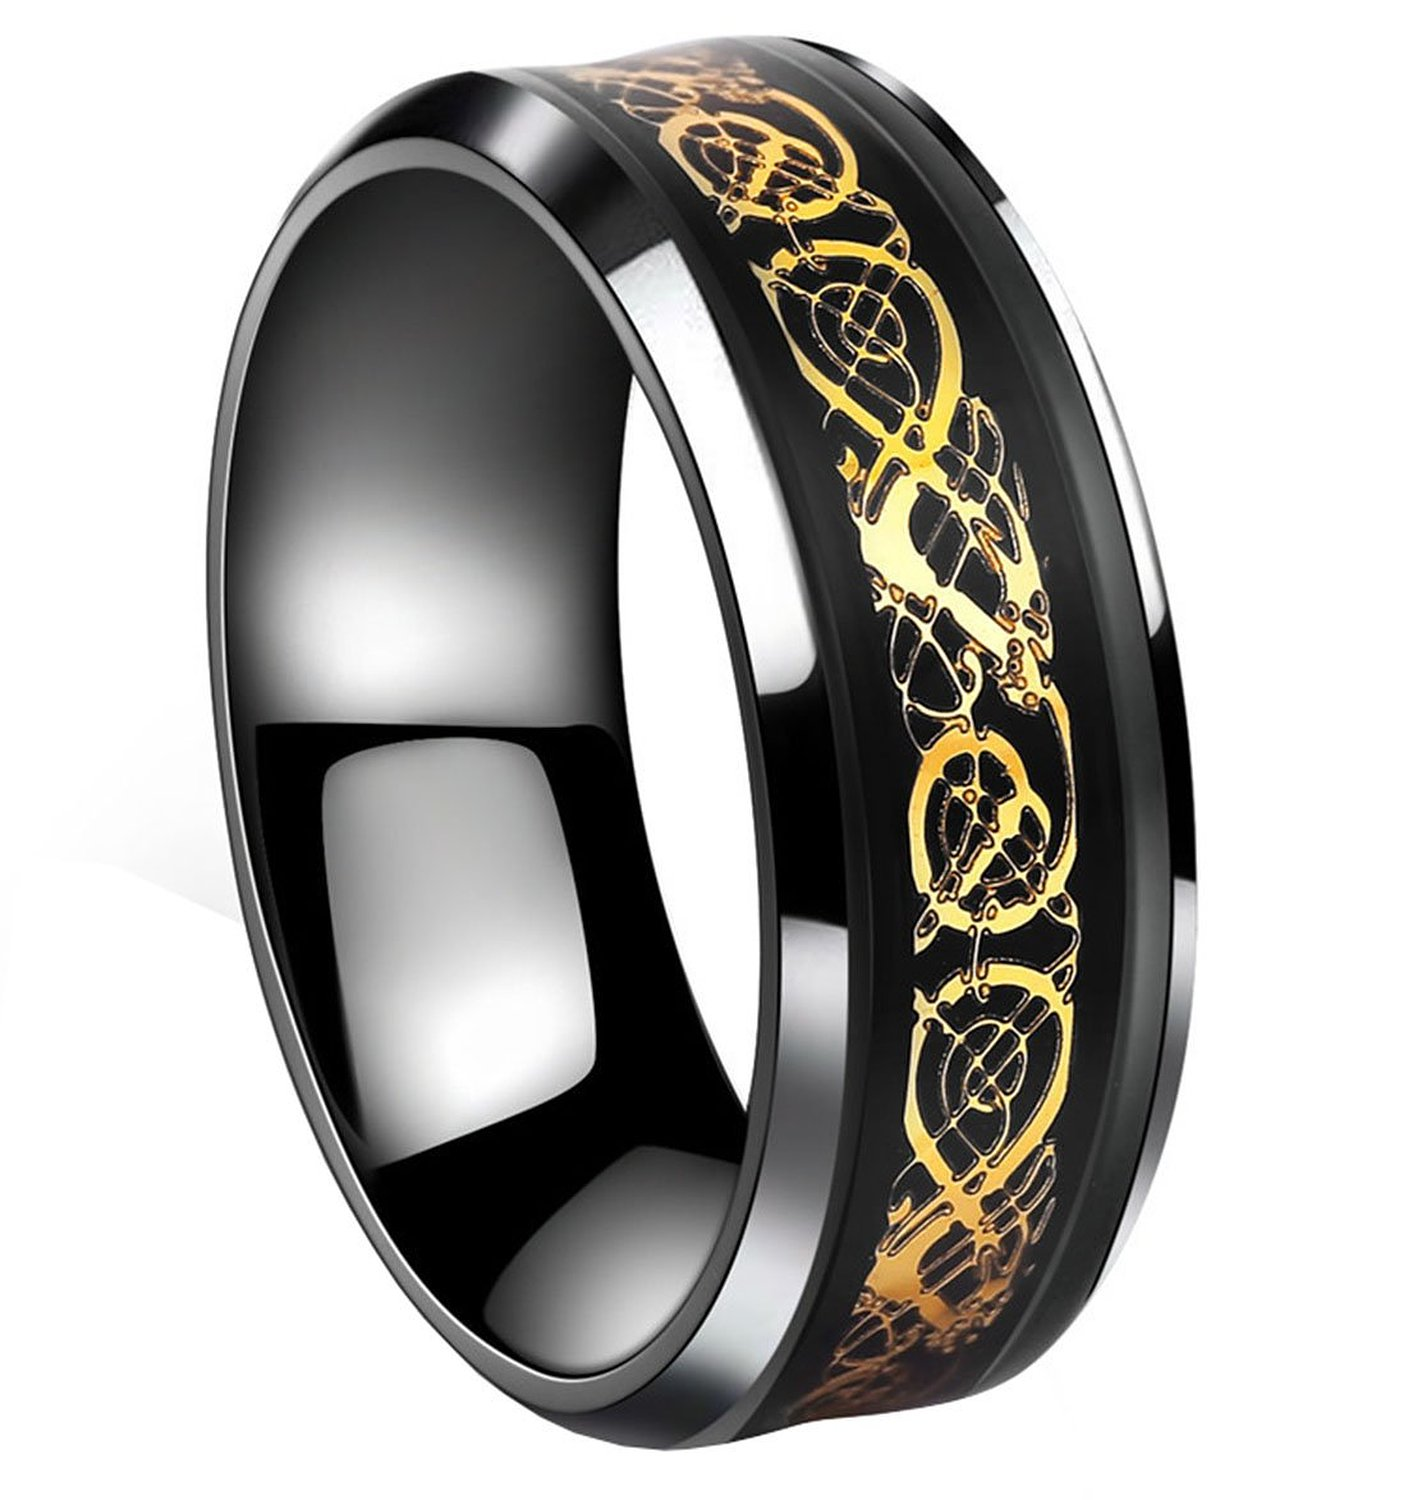 Tanyoyo Black Celtic Dragon Titanium steel Carbide Ring Gold Carbon Fibre Wedding Band Jewelry Size 5-14|Amazon.com